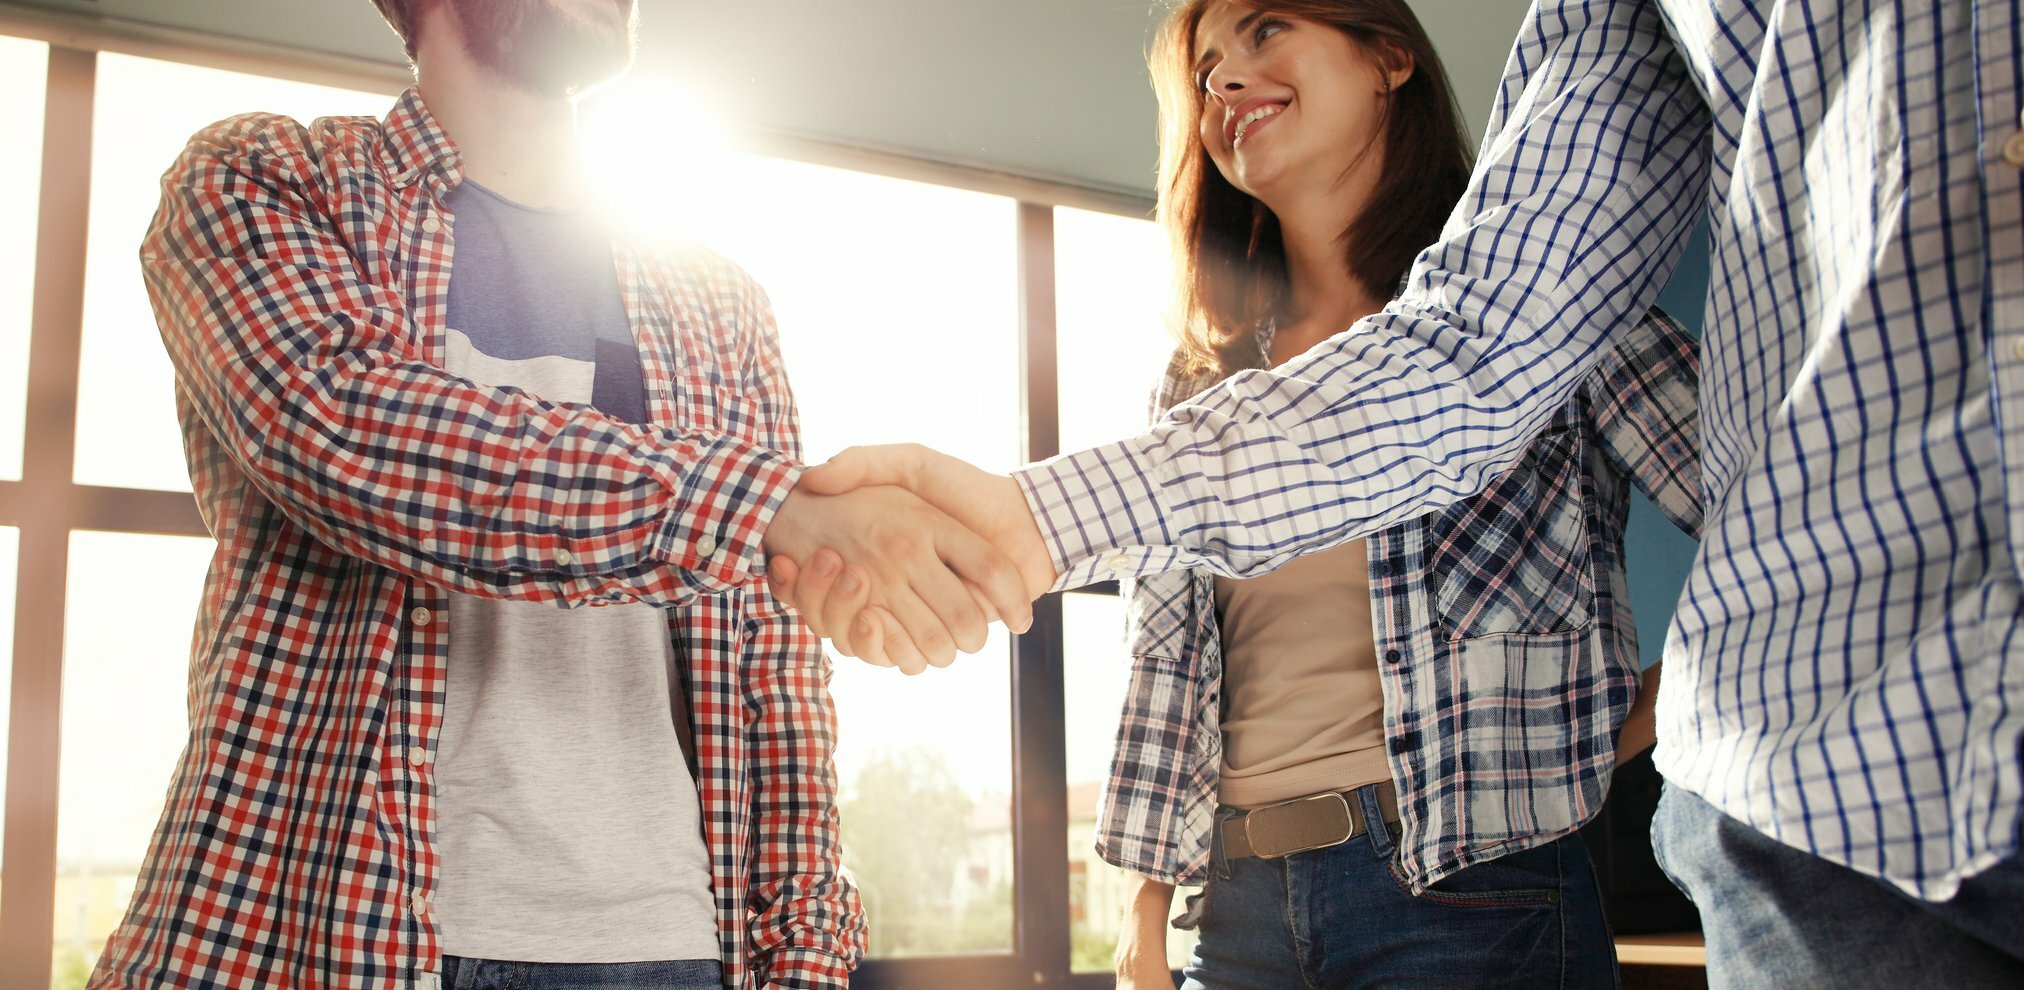 7 Realistic Ways to Turn Professional Connections Into Real Relationships